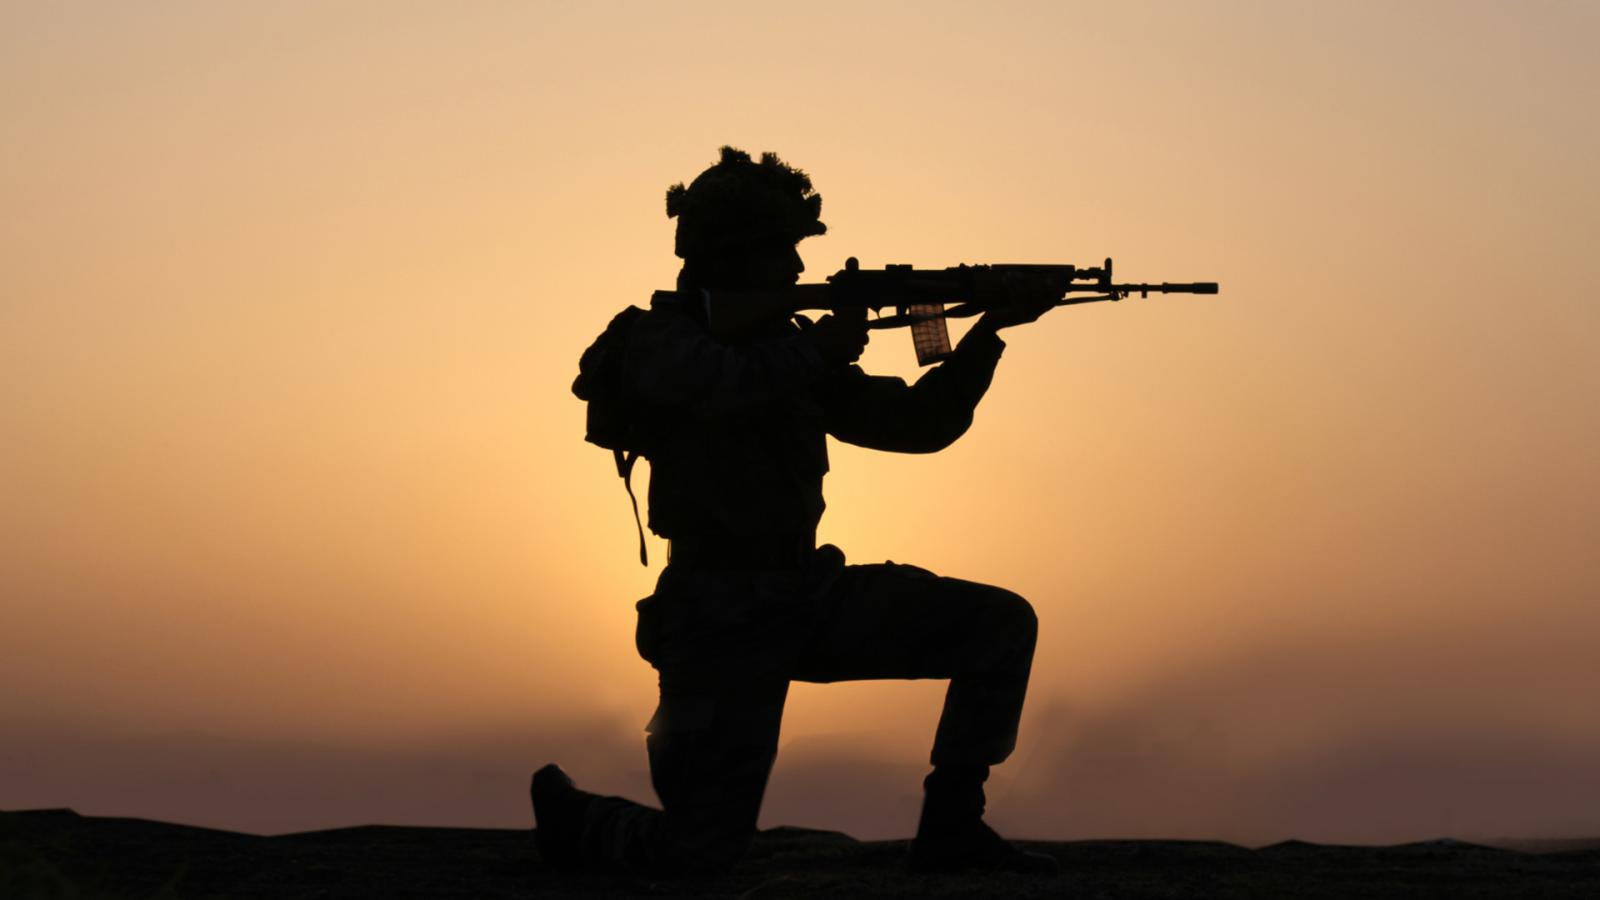 Indian Army Wallpapers Hd Free Download: Indian Army Wallpaper With Soldier In Silhouette